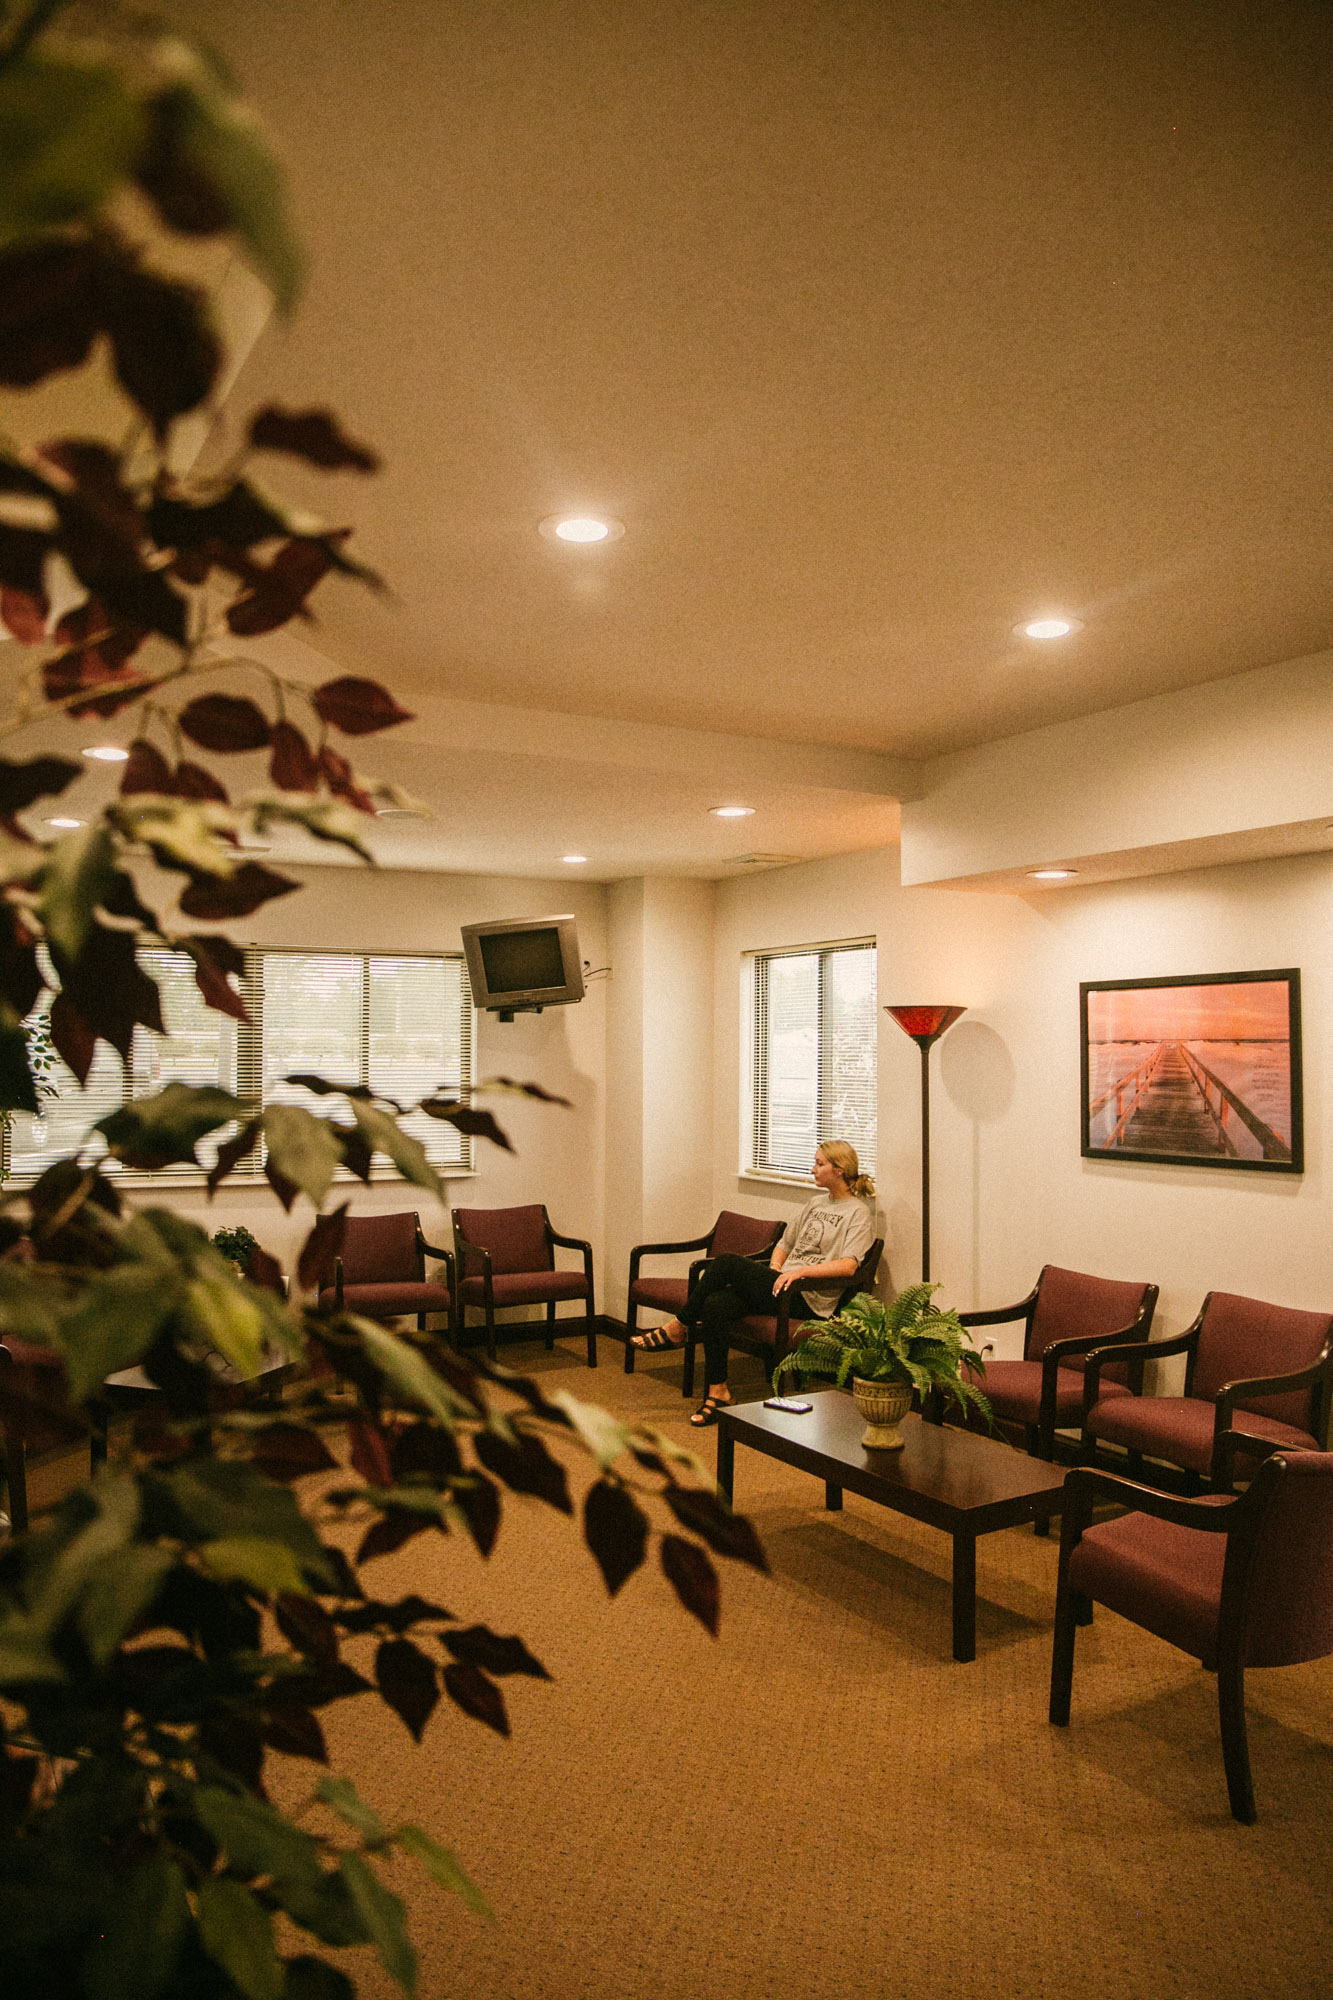 A lady sits in a welcoming waiting room